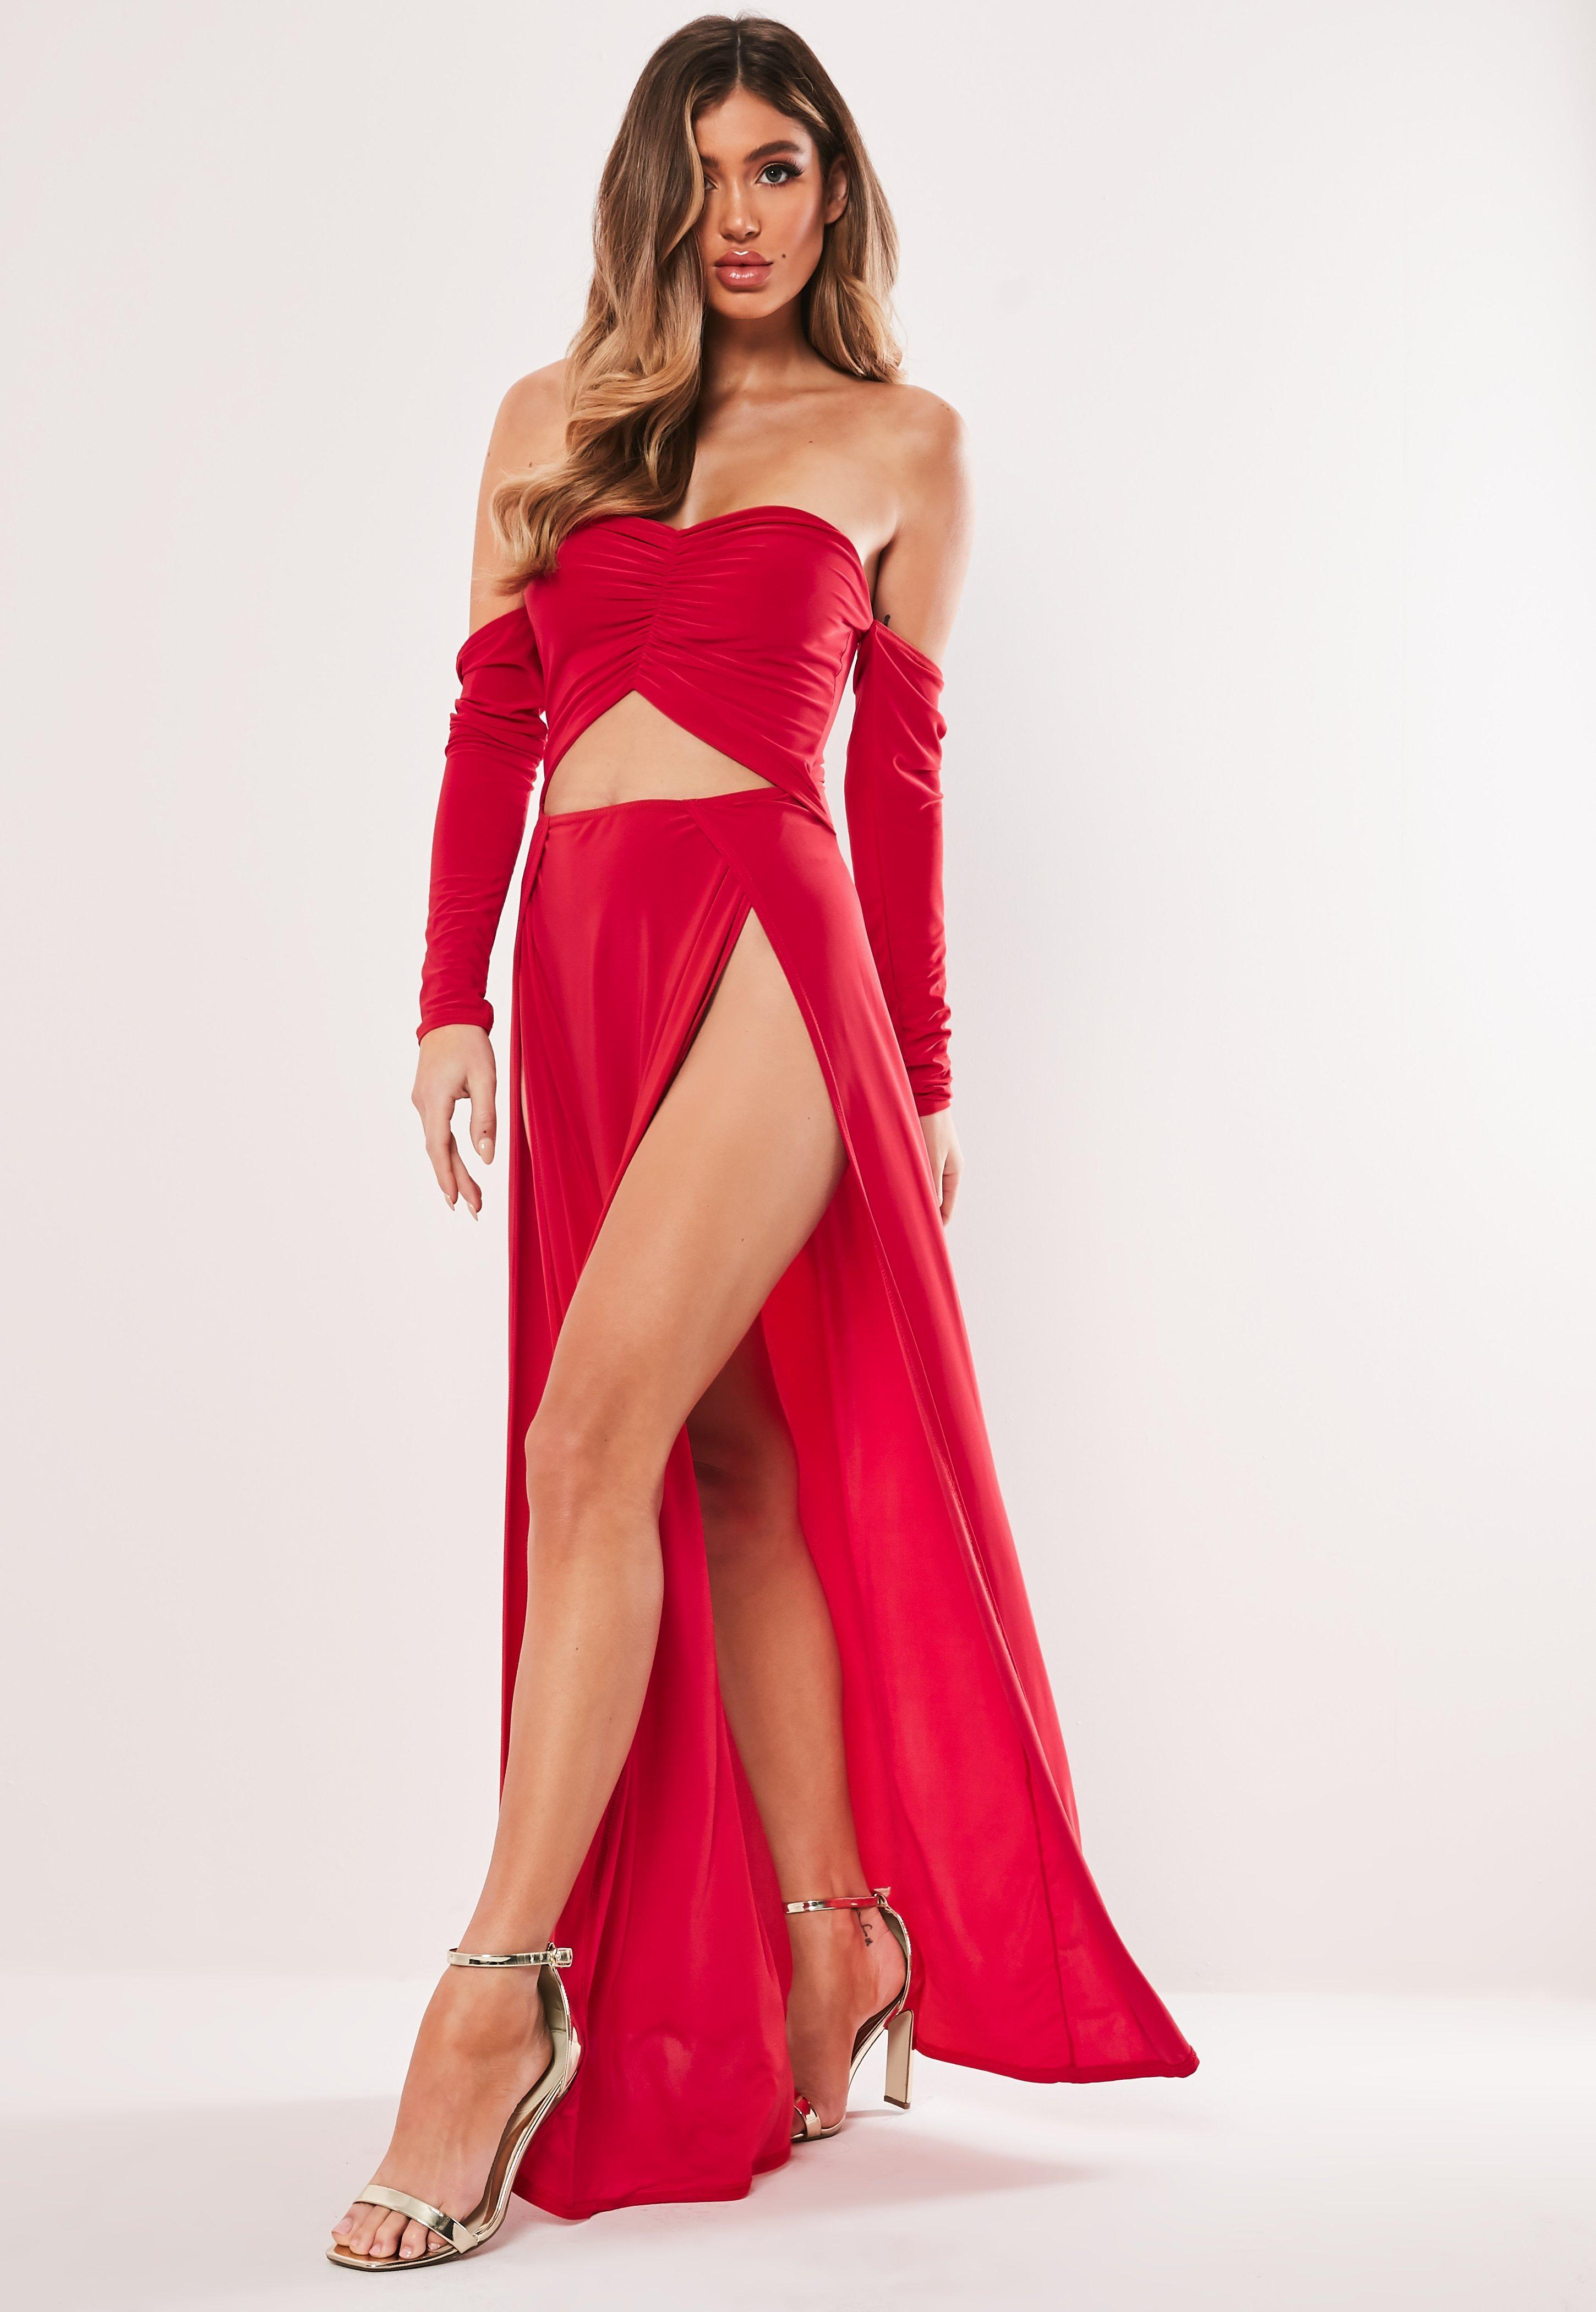 ced46f756a54 Lyst - Missguided Red Slinky Bardot Cut Out Split Maxi Dress in Red